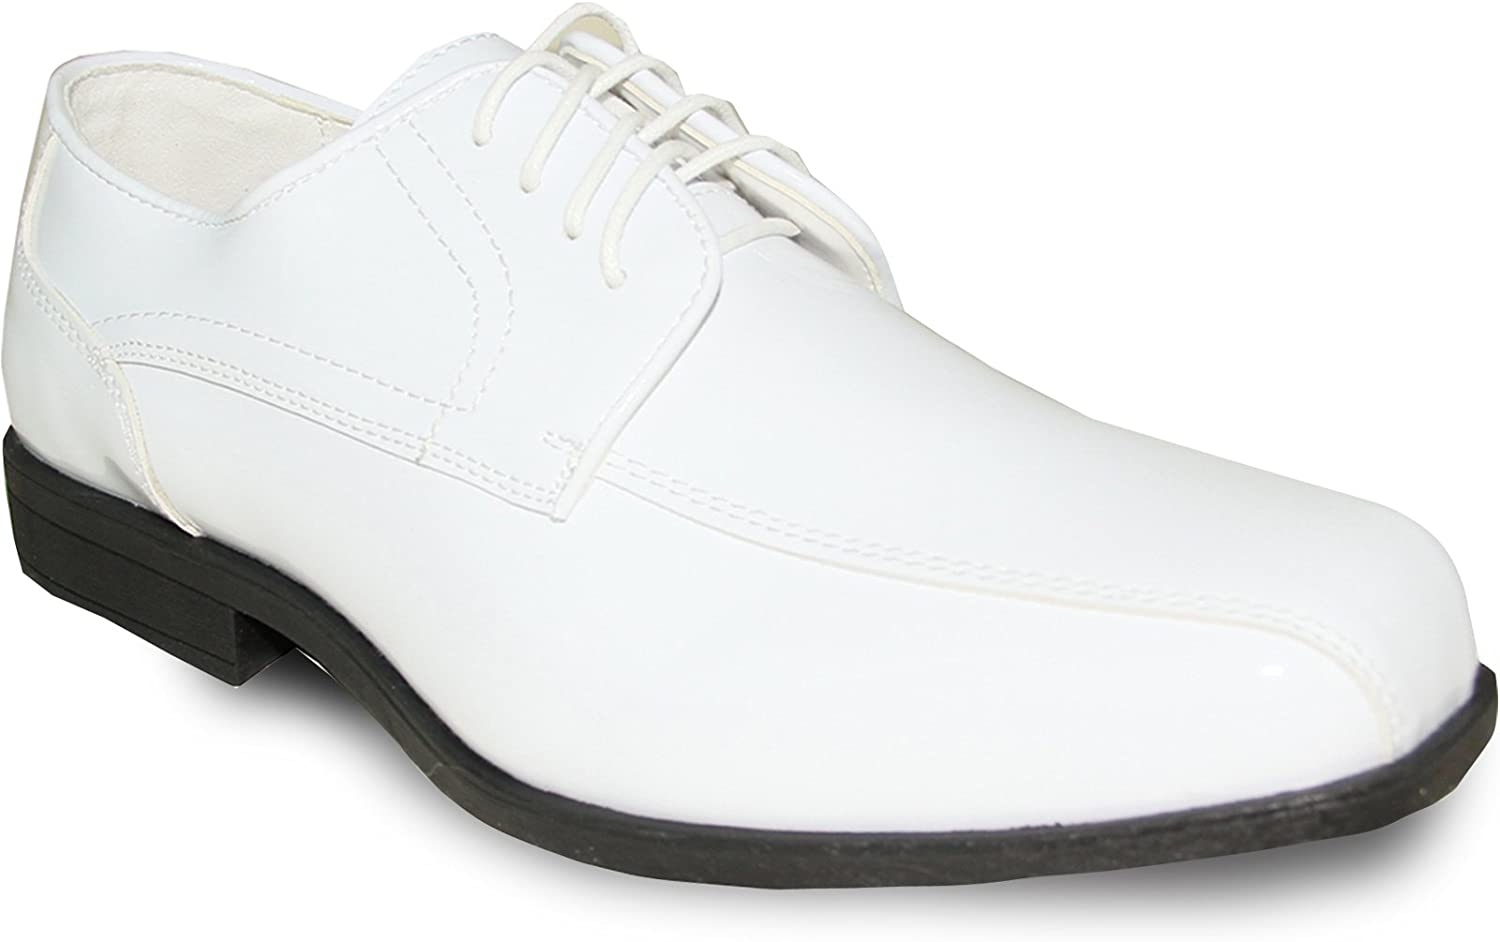 Jean Yves Dress shoes JY02 Double Runner Tuxedo for Wedding, Prom and Formal Event